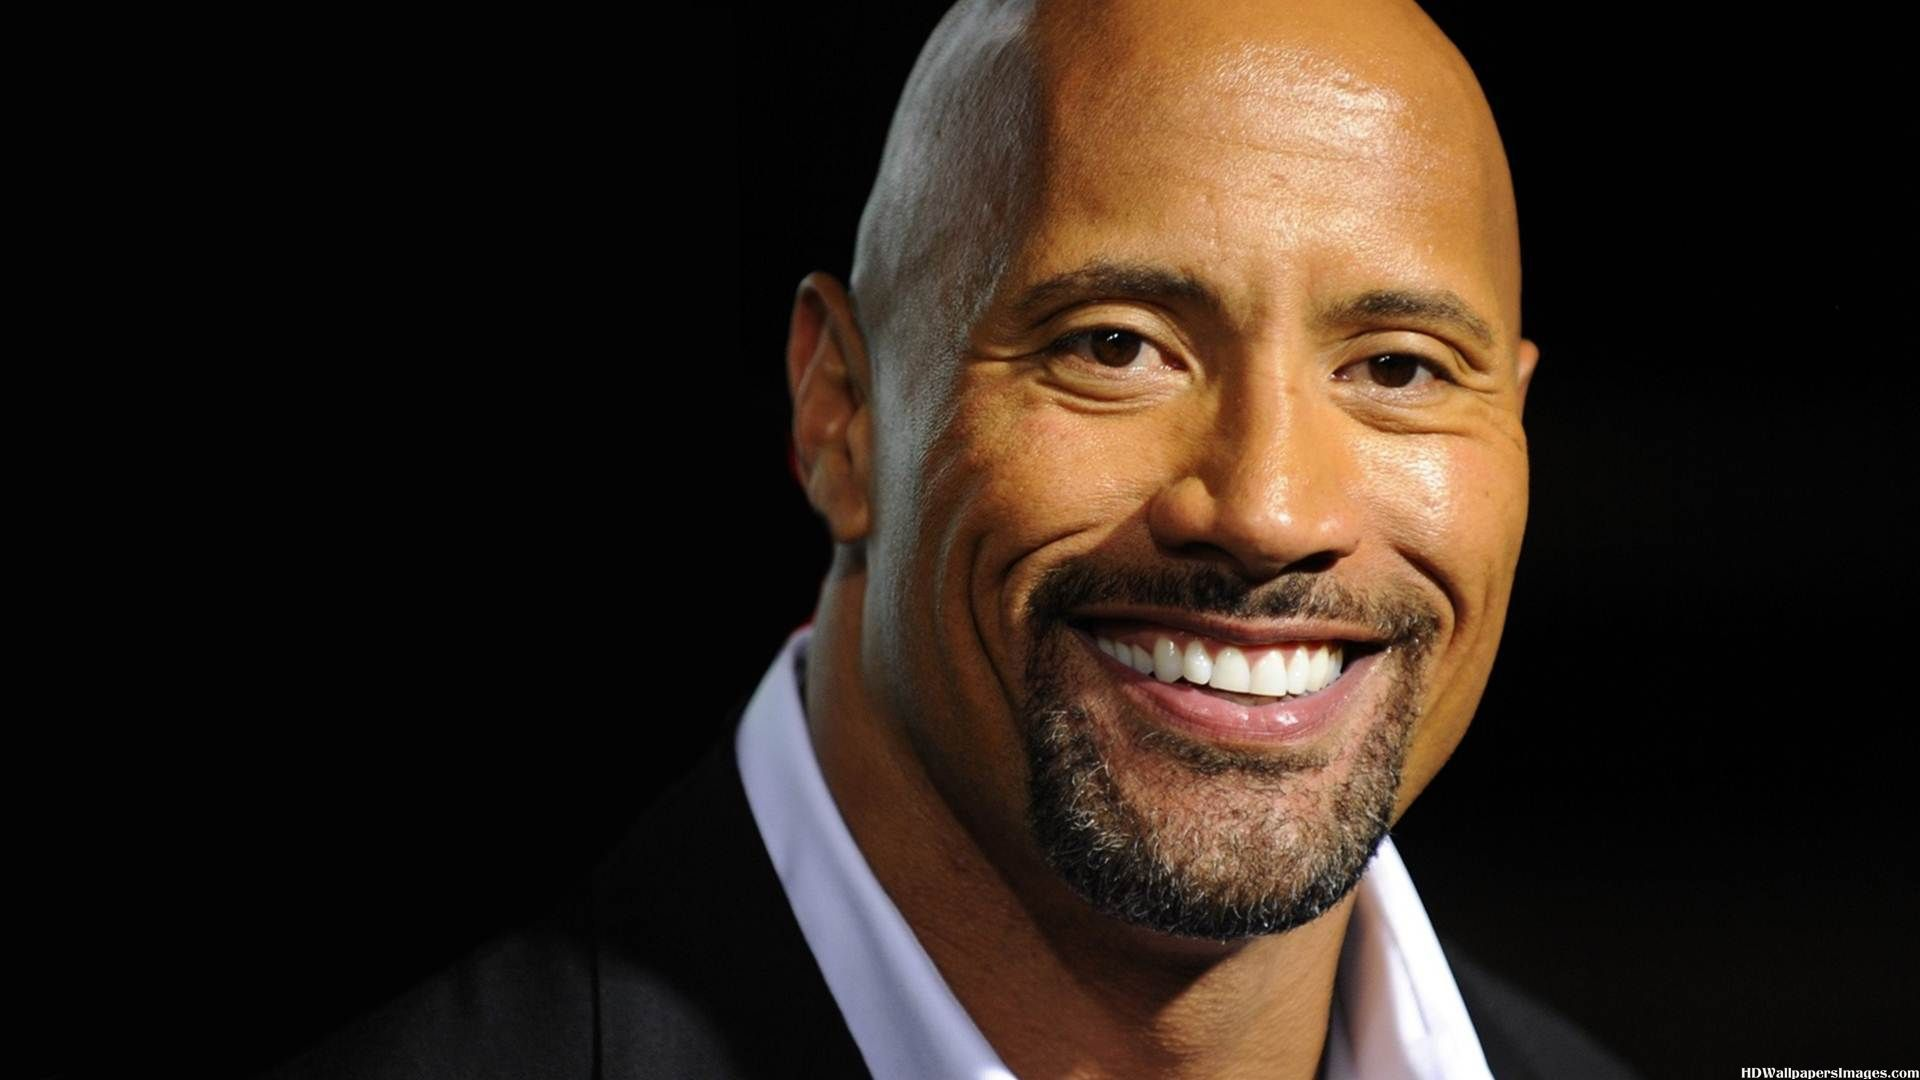 Dwayne Johnson vjera u Boga